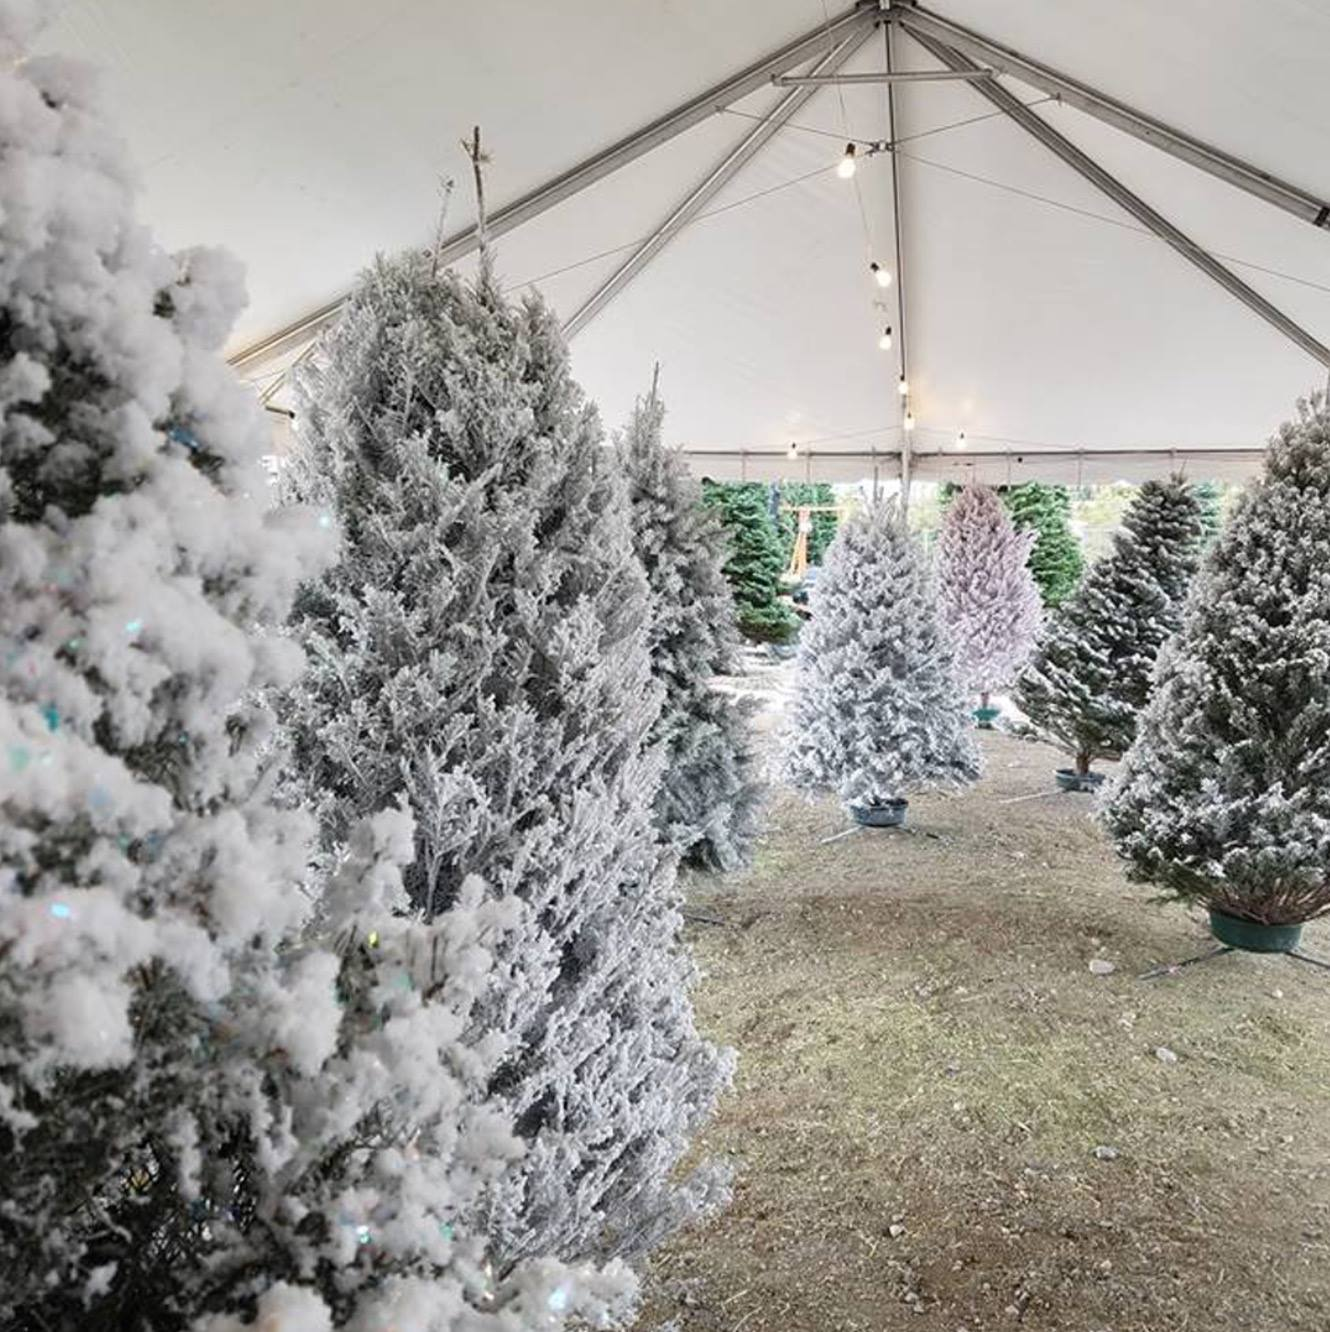 Boston Christmas Tree Delivery: Find Colorful Christmas Trees At Rudolph's Christmas Trees